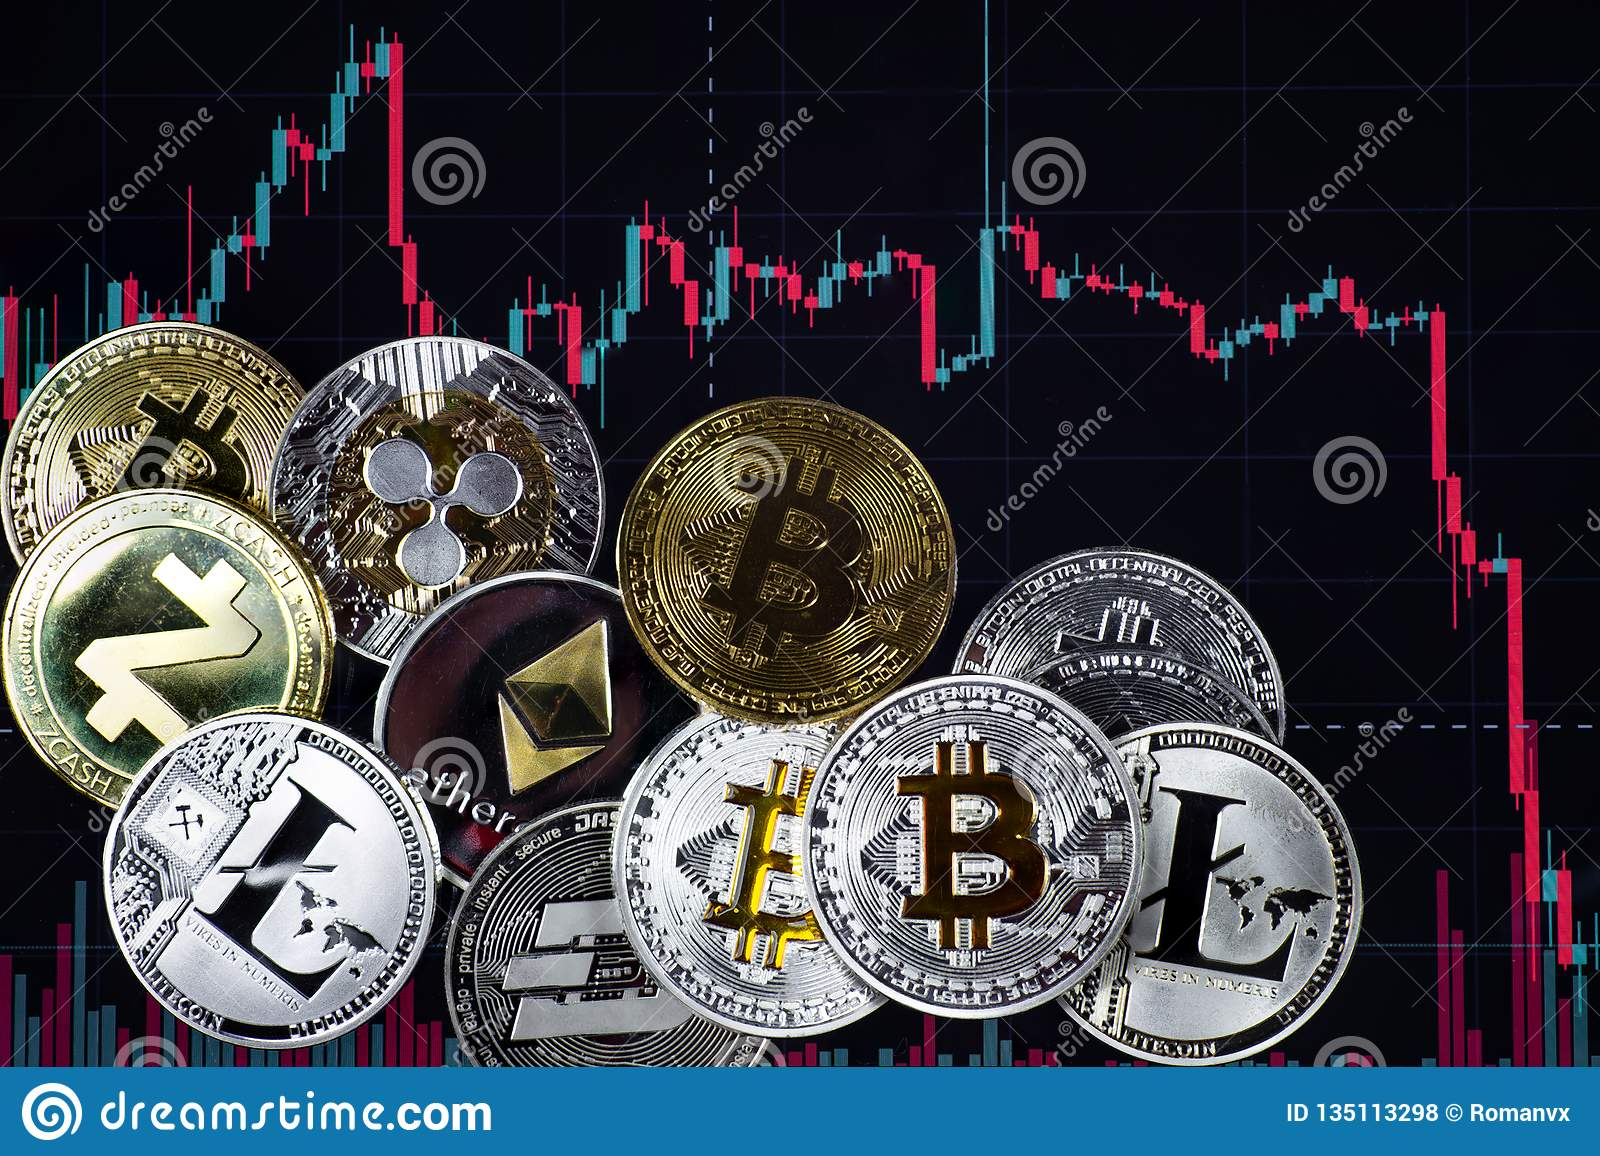 Coins etherium, bitcoin, dash, litecoin, ripple, zcash against the background of falling exchange chart